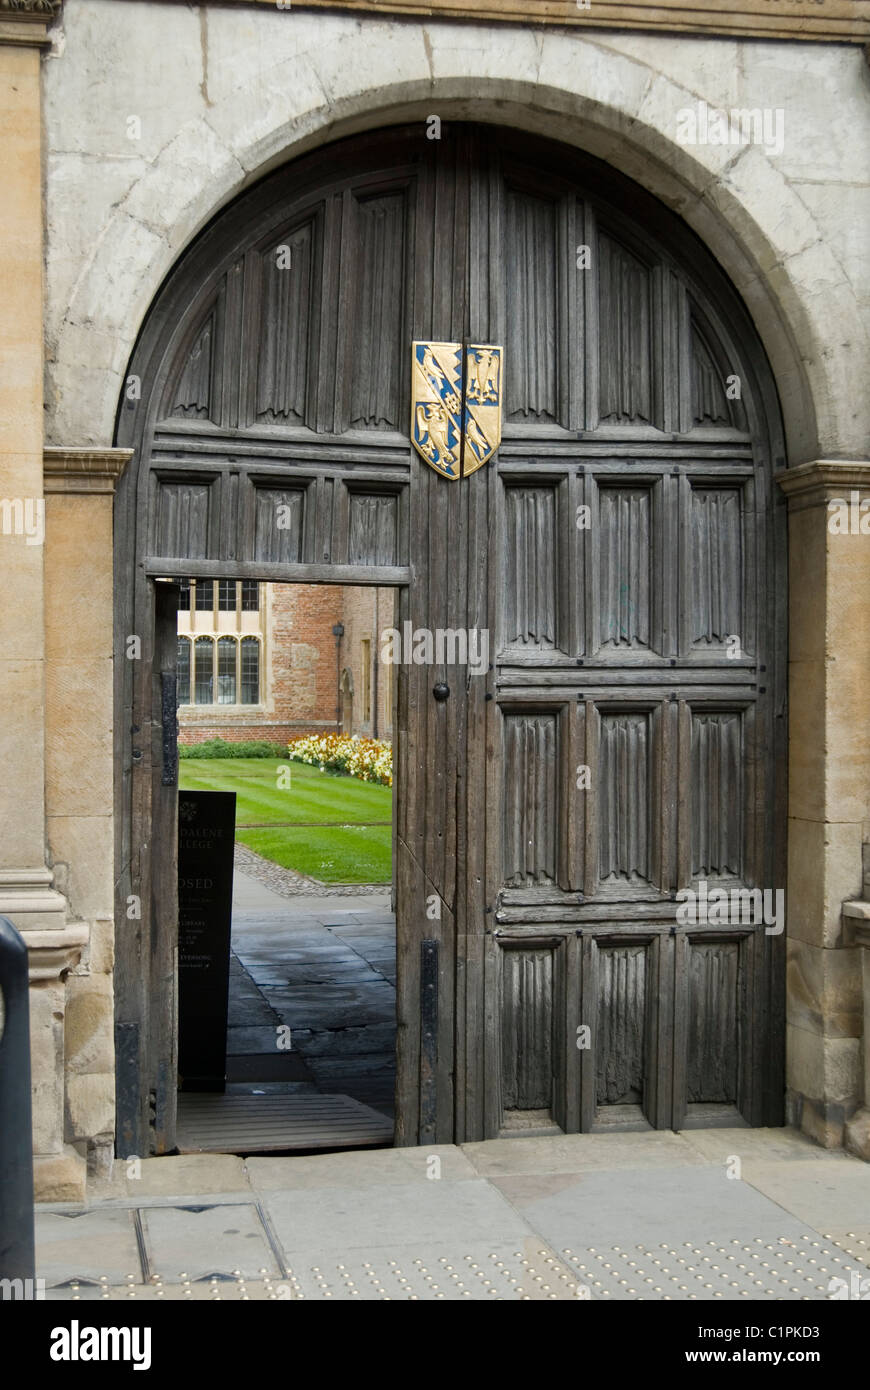 England, Cambridge, Magdalene College door - Stock Image